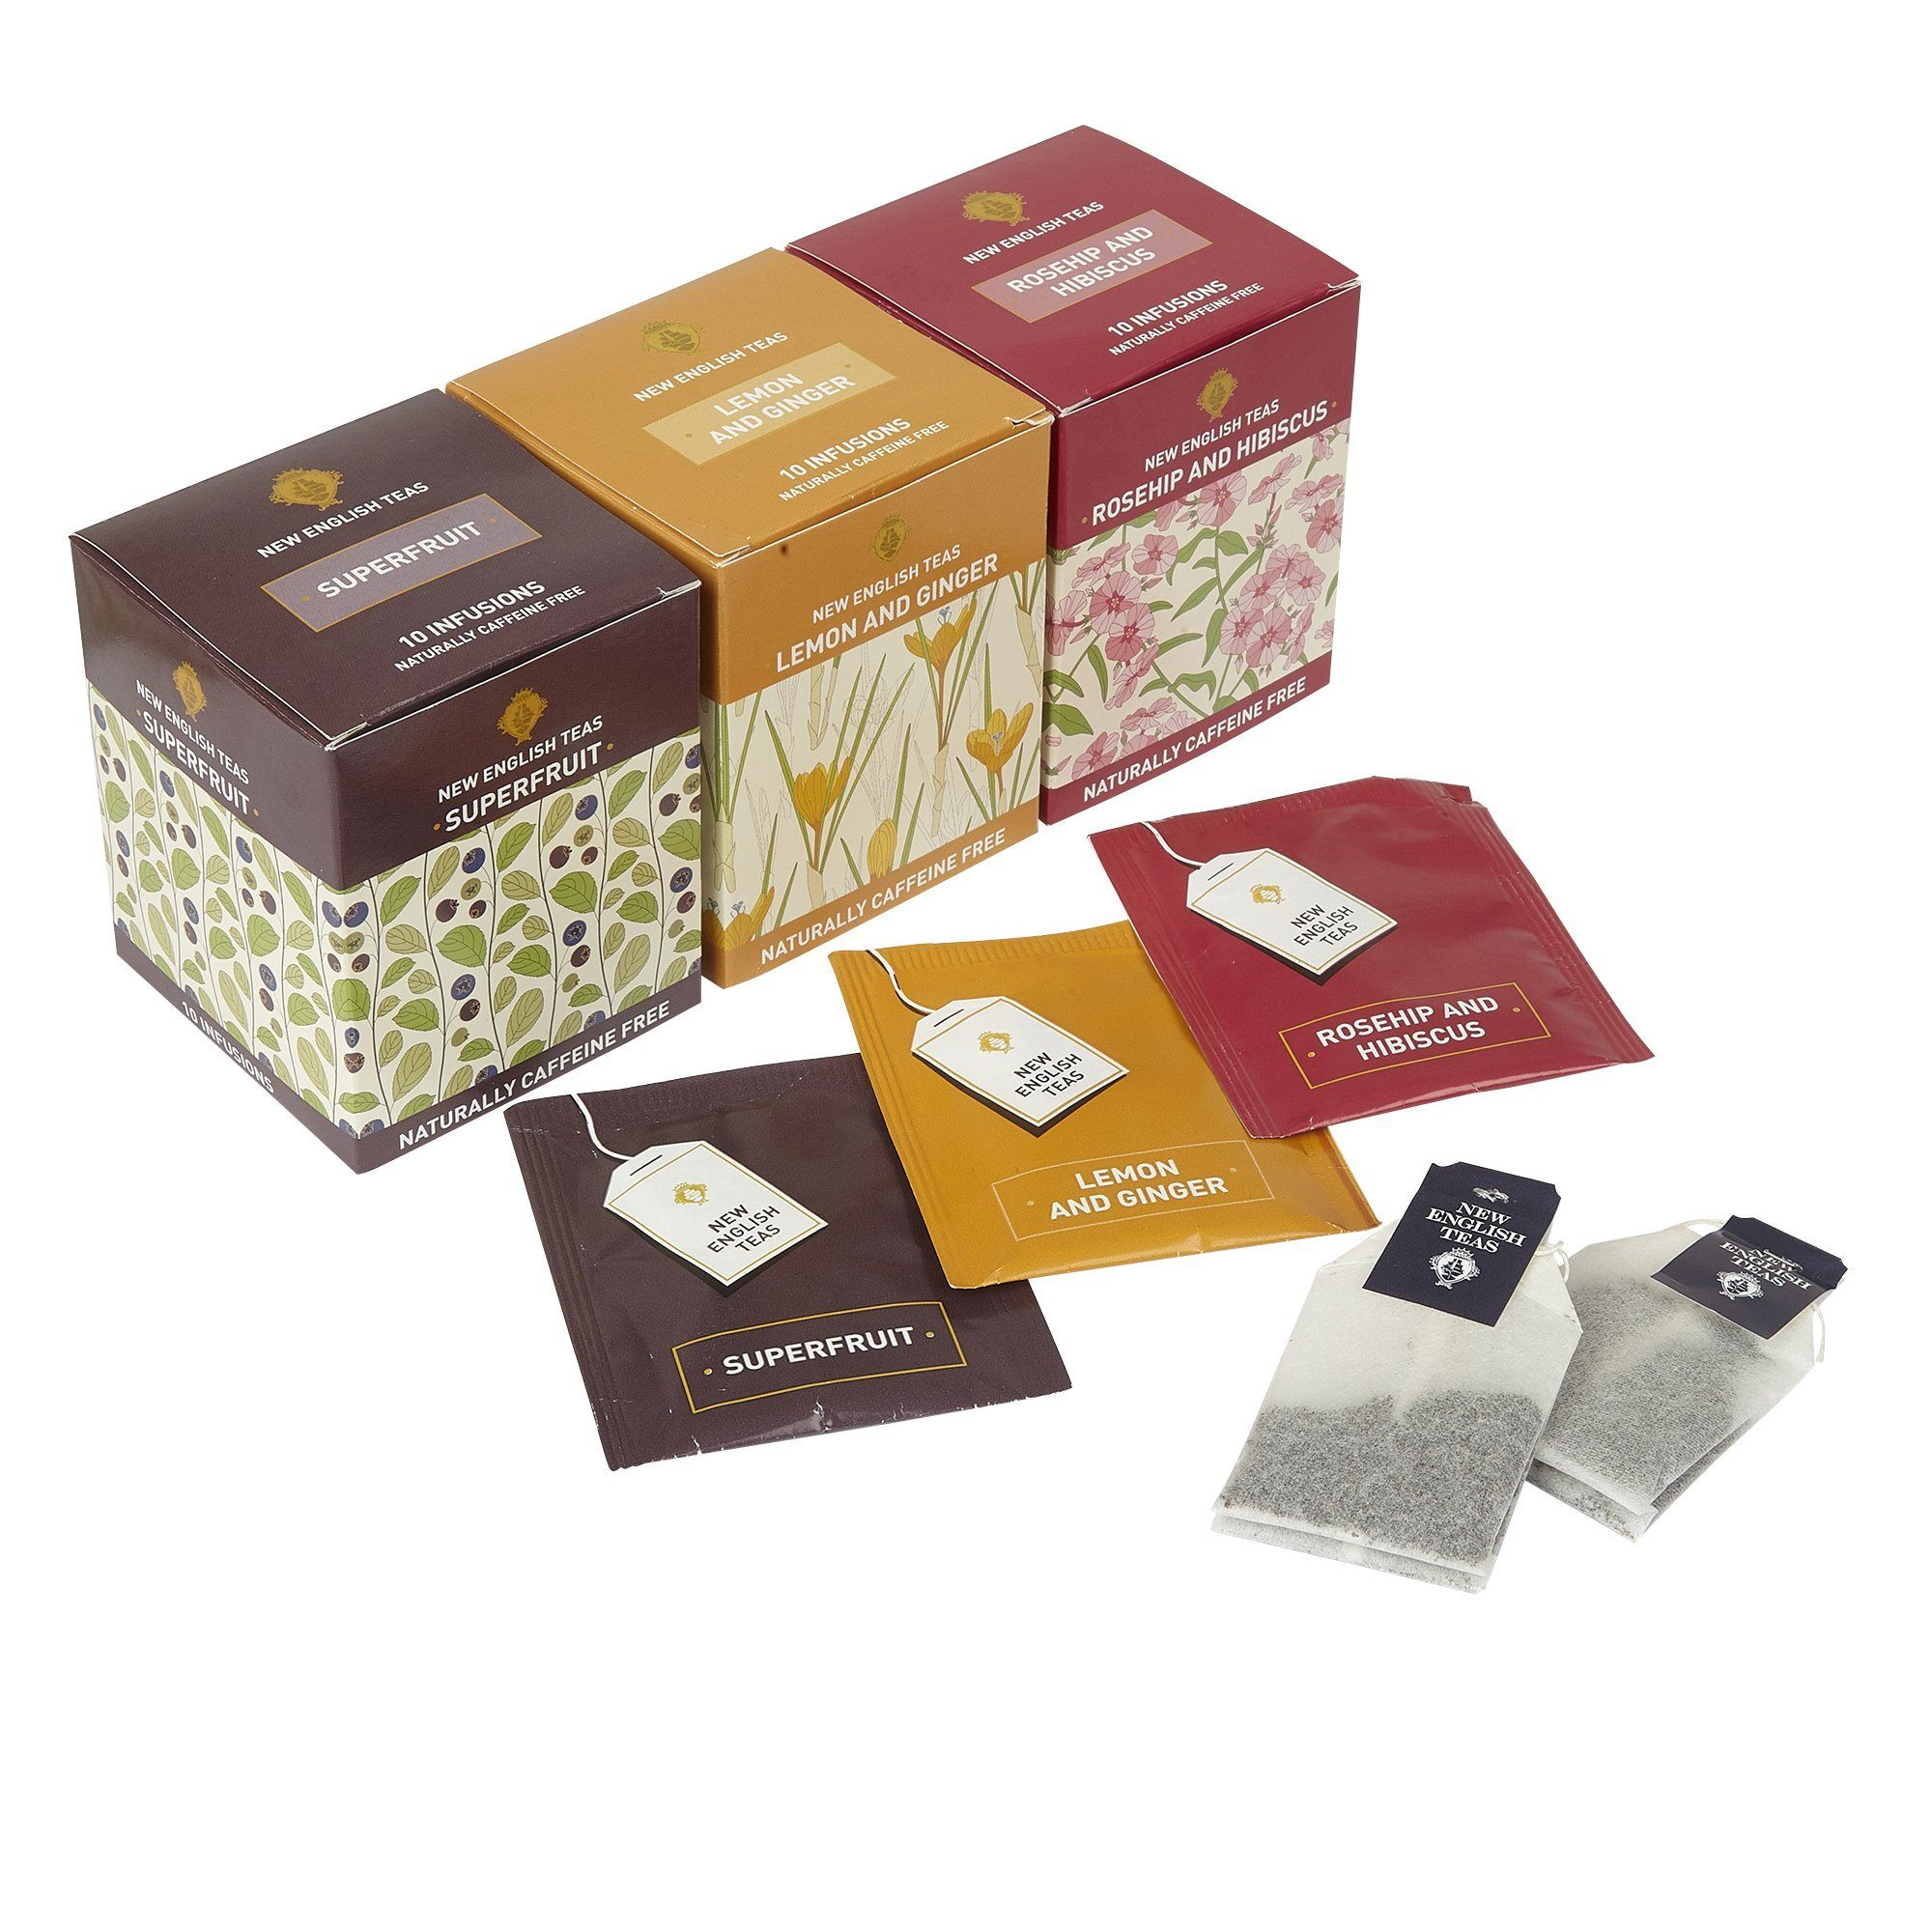 Wellbeing Tea Selection Boost Me 30 Teabags Fruit Tea, Herbal Tea New English Teas